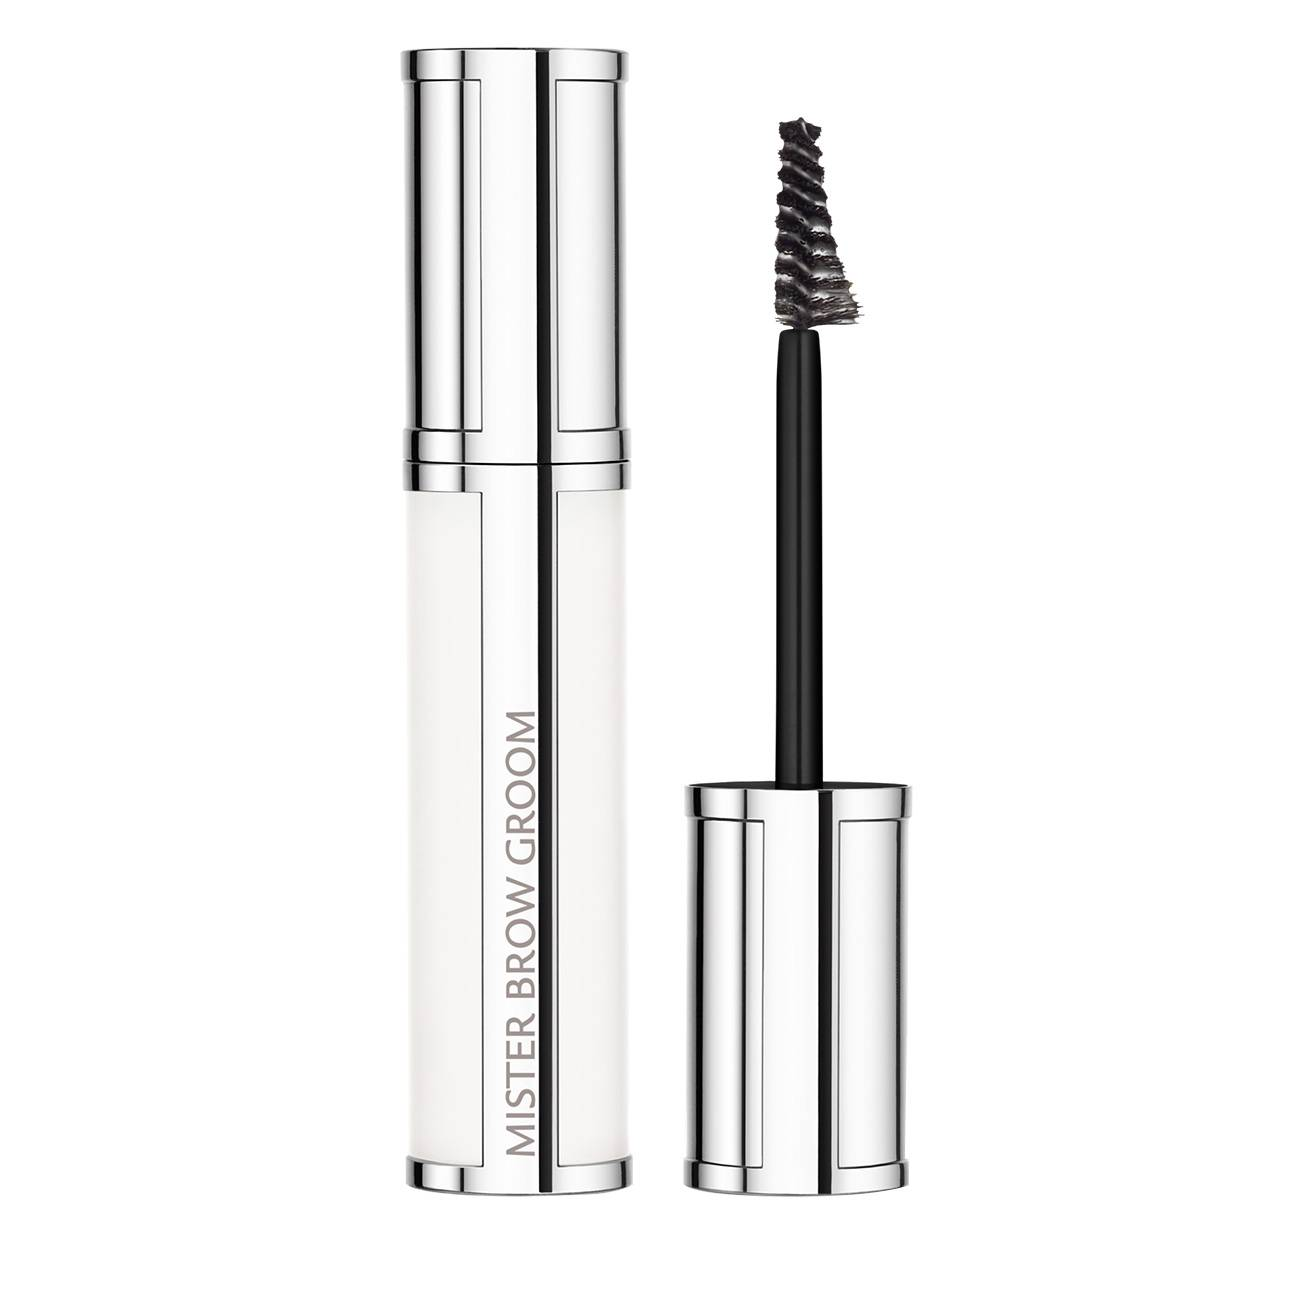 MISTER BROW GROOM MASCARA 5.5ml imagine produs